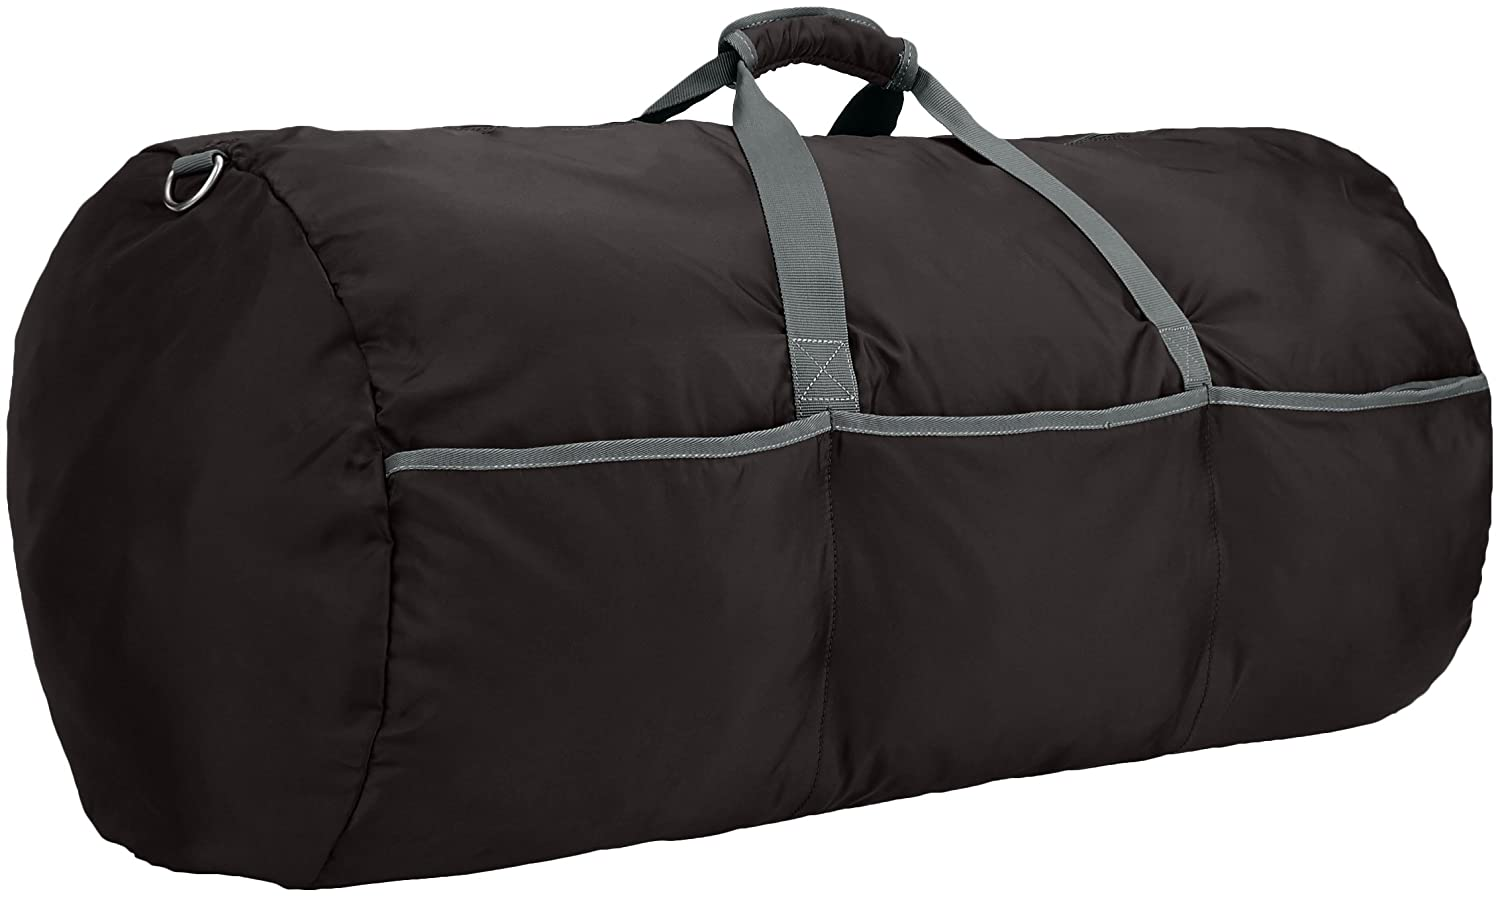 amazonbasics 98 ltrs large duffel bag black amazon in bags